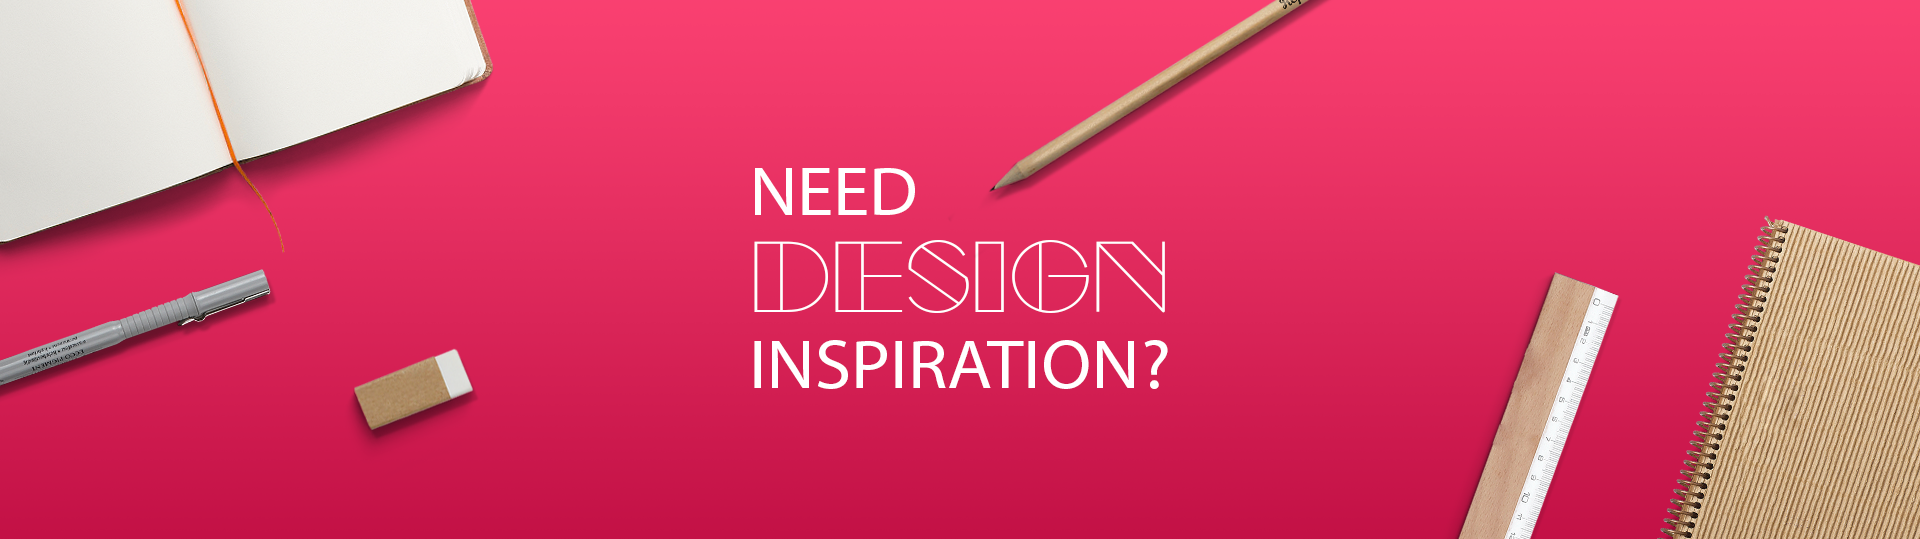 "Blog Header Image ""Need Design Inspiration?"""